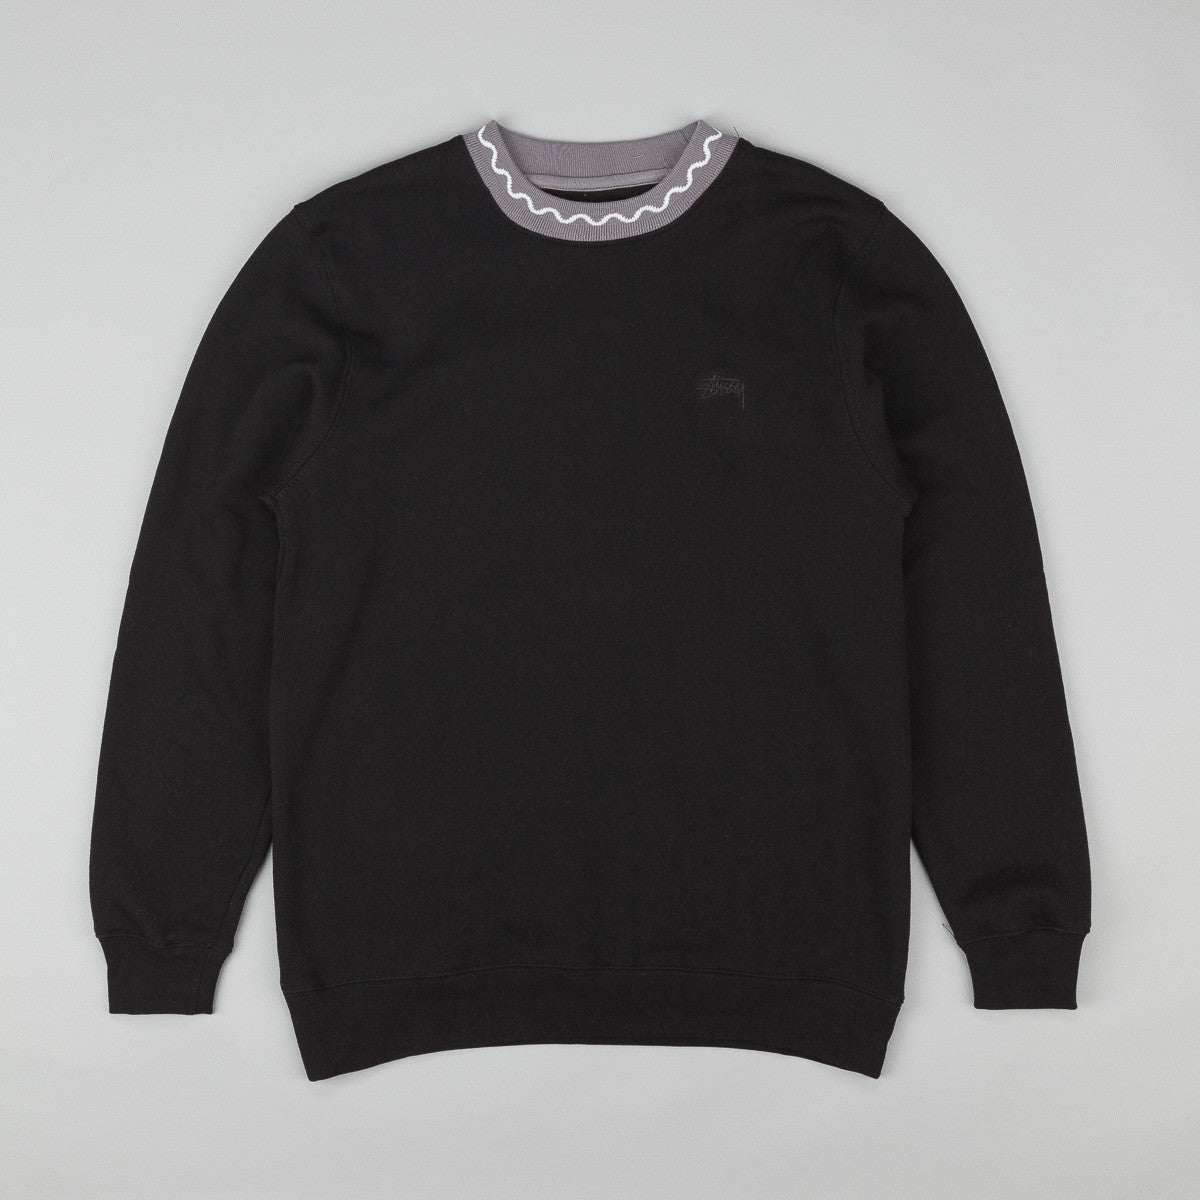 Stussy Crew Neck Jacquard Fleece Sweatshirt